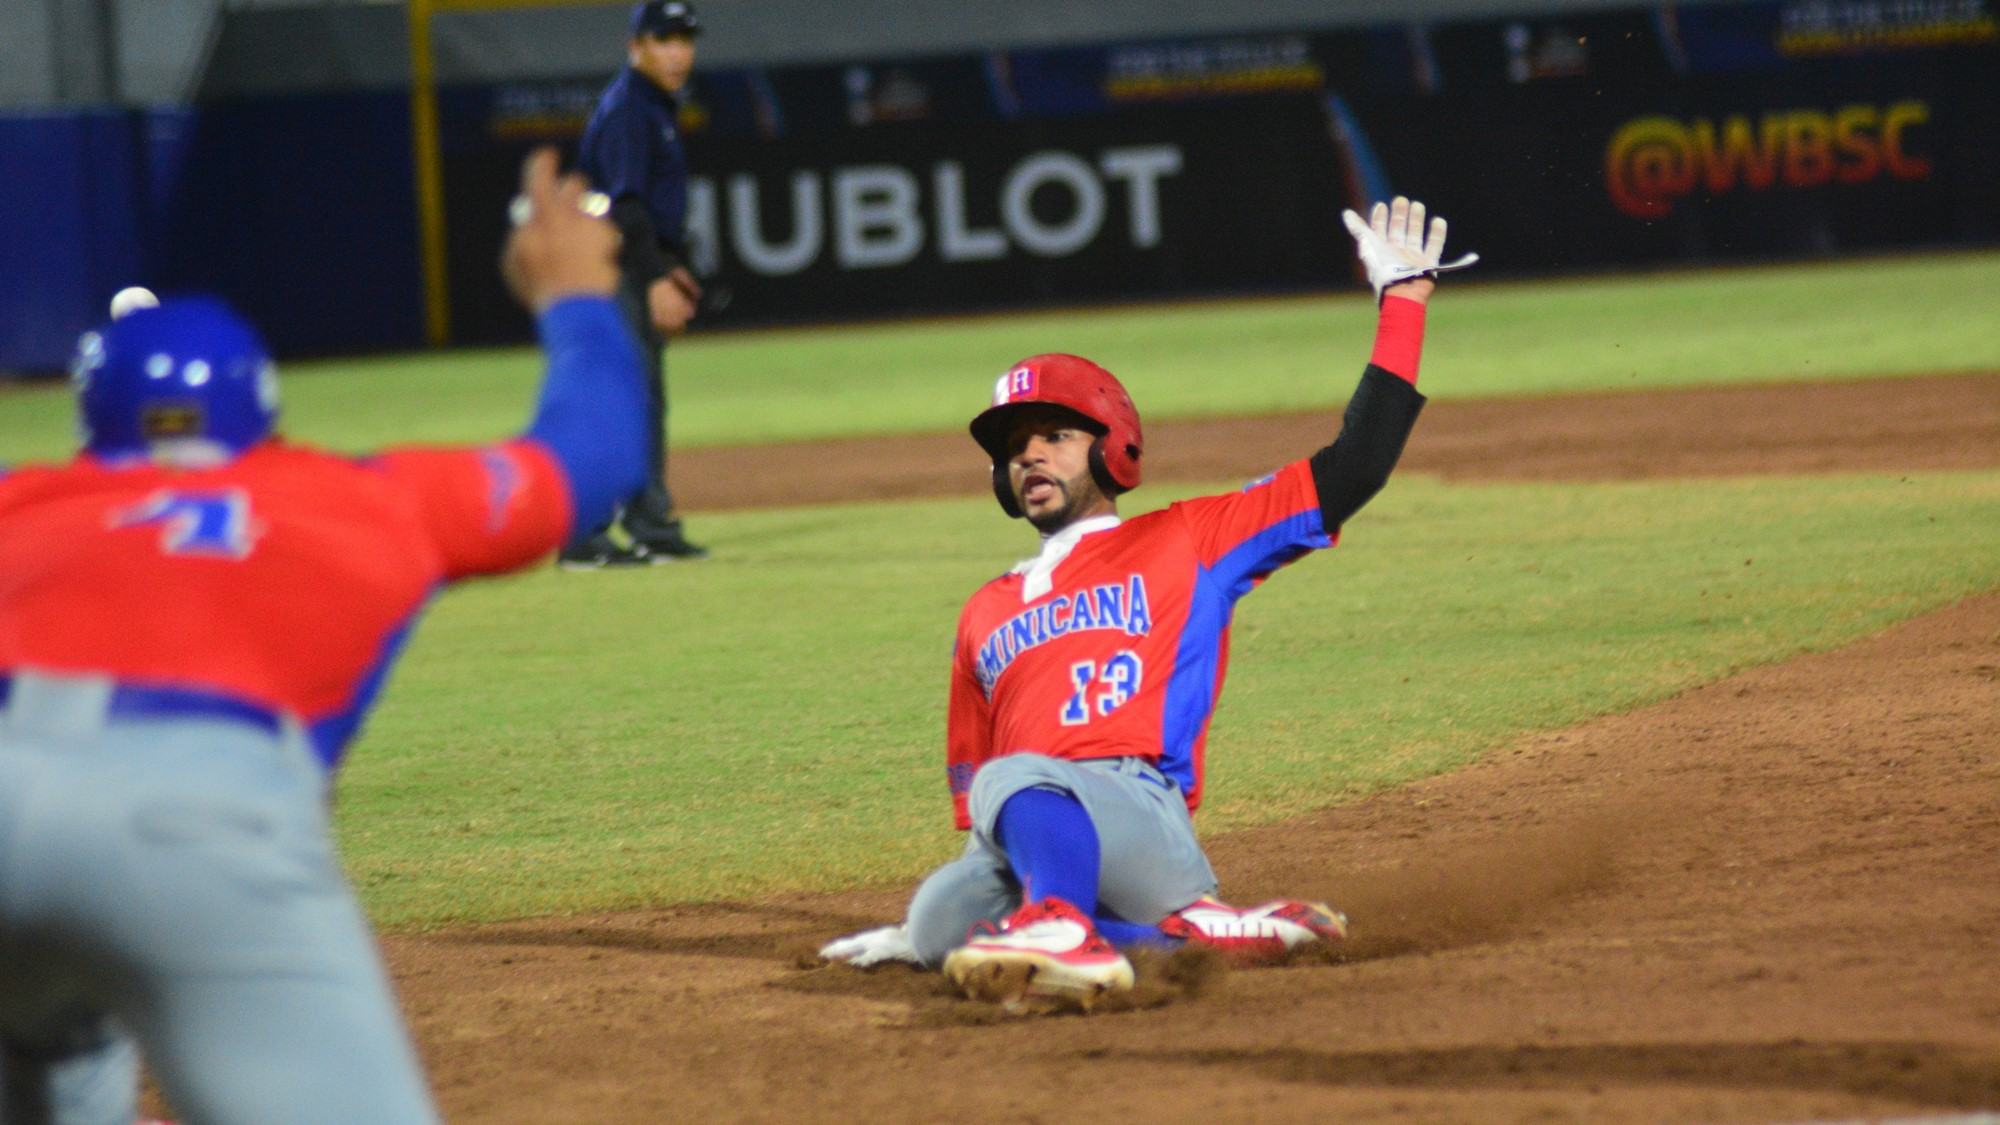 Gilberto Celestino of the Dominican Republic slides into third